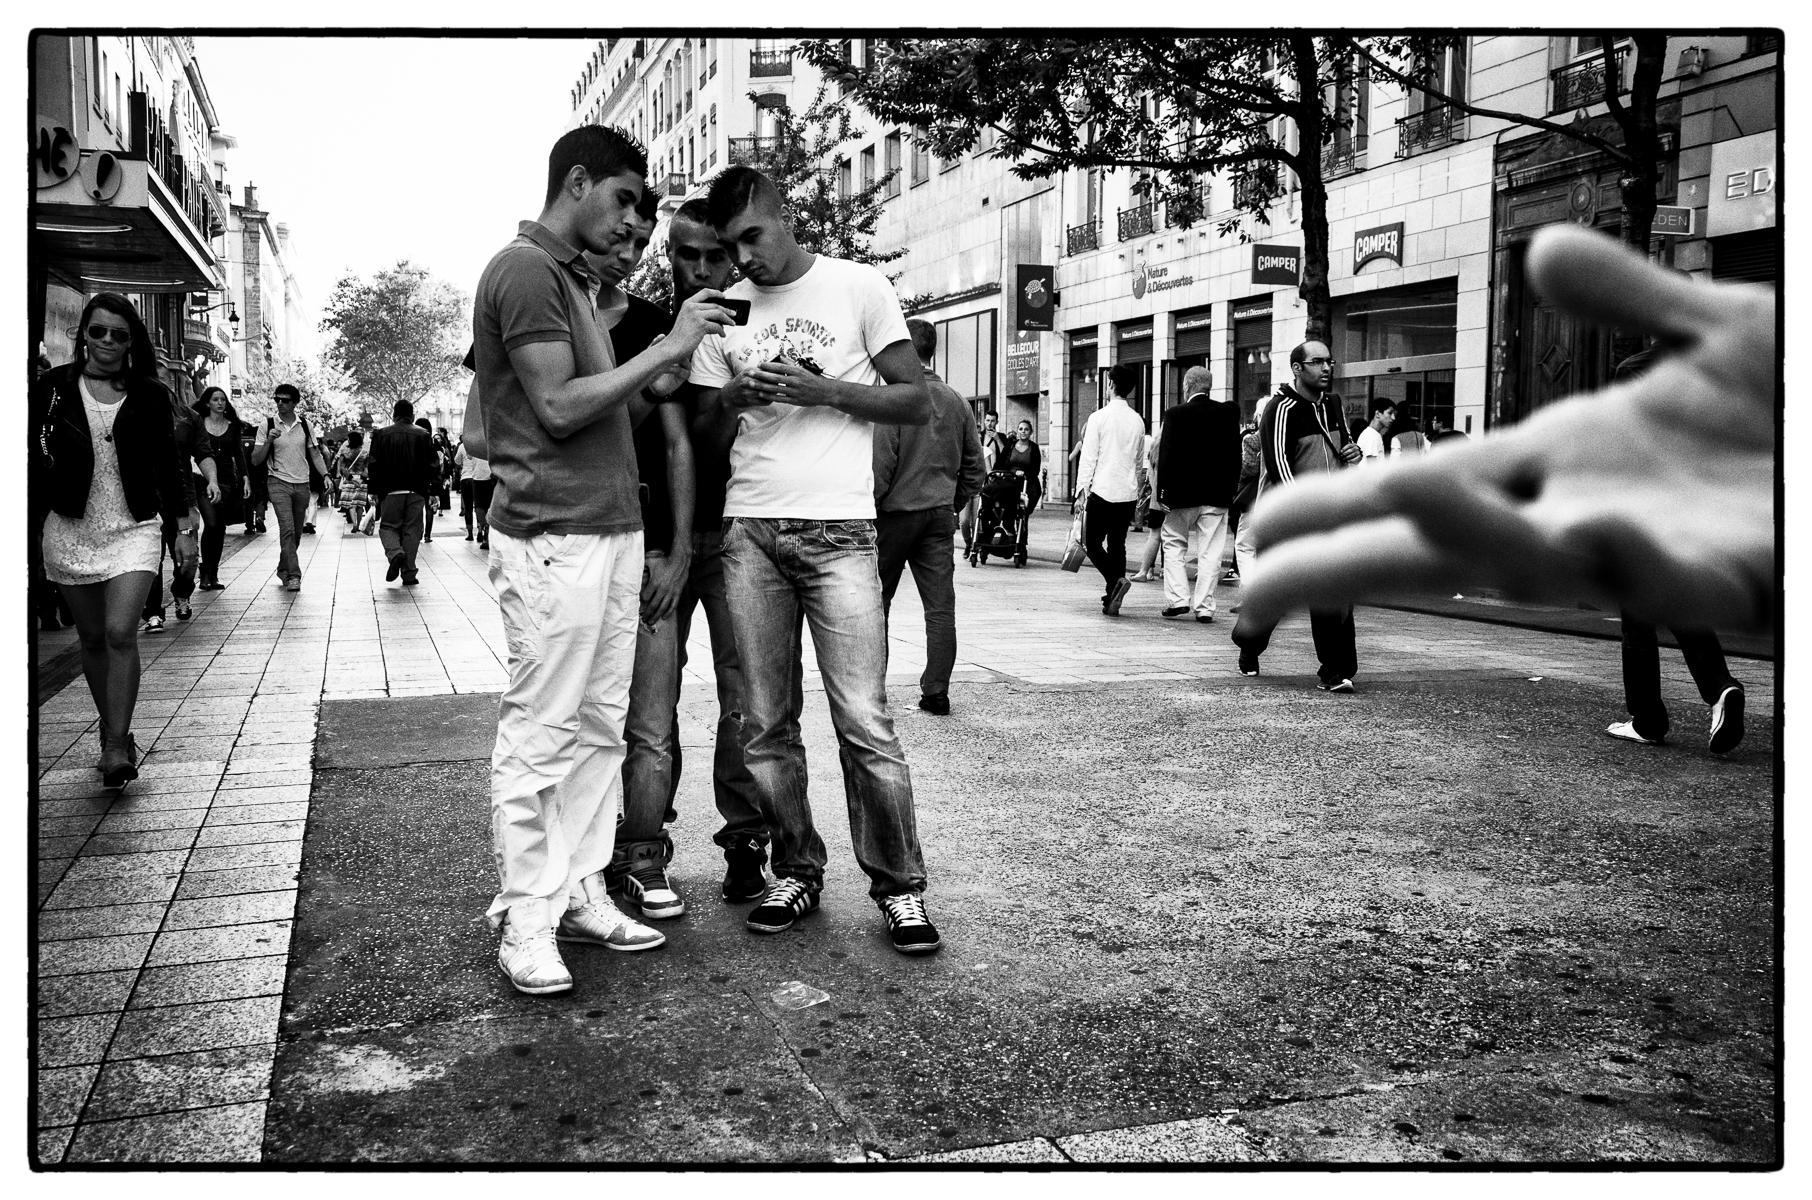 Lyon : street & stories : TIMOTHY FLOYD PHOTOGRAPHER, NATURE PHOTOGRAPHY, PHOTO ESSAYS, PHOTOJOURNALISM